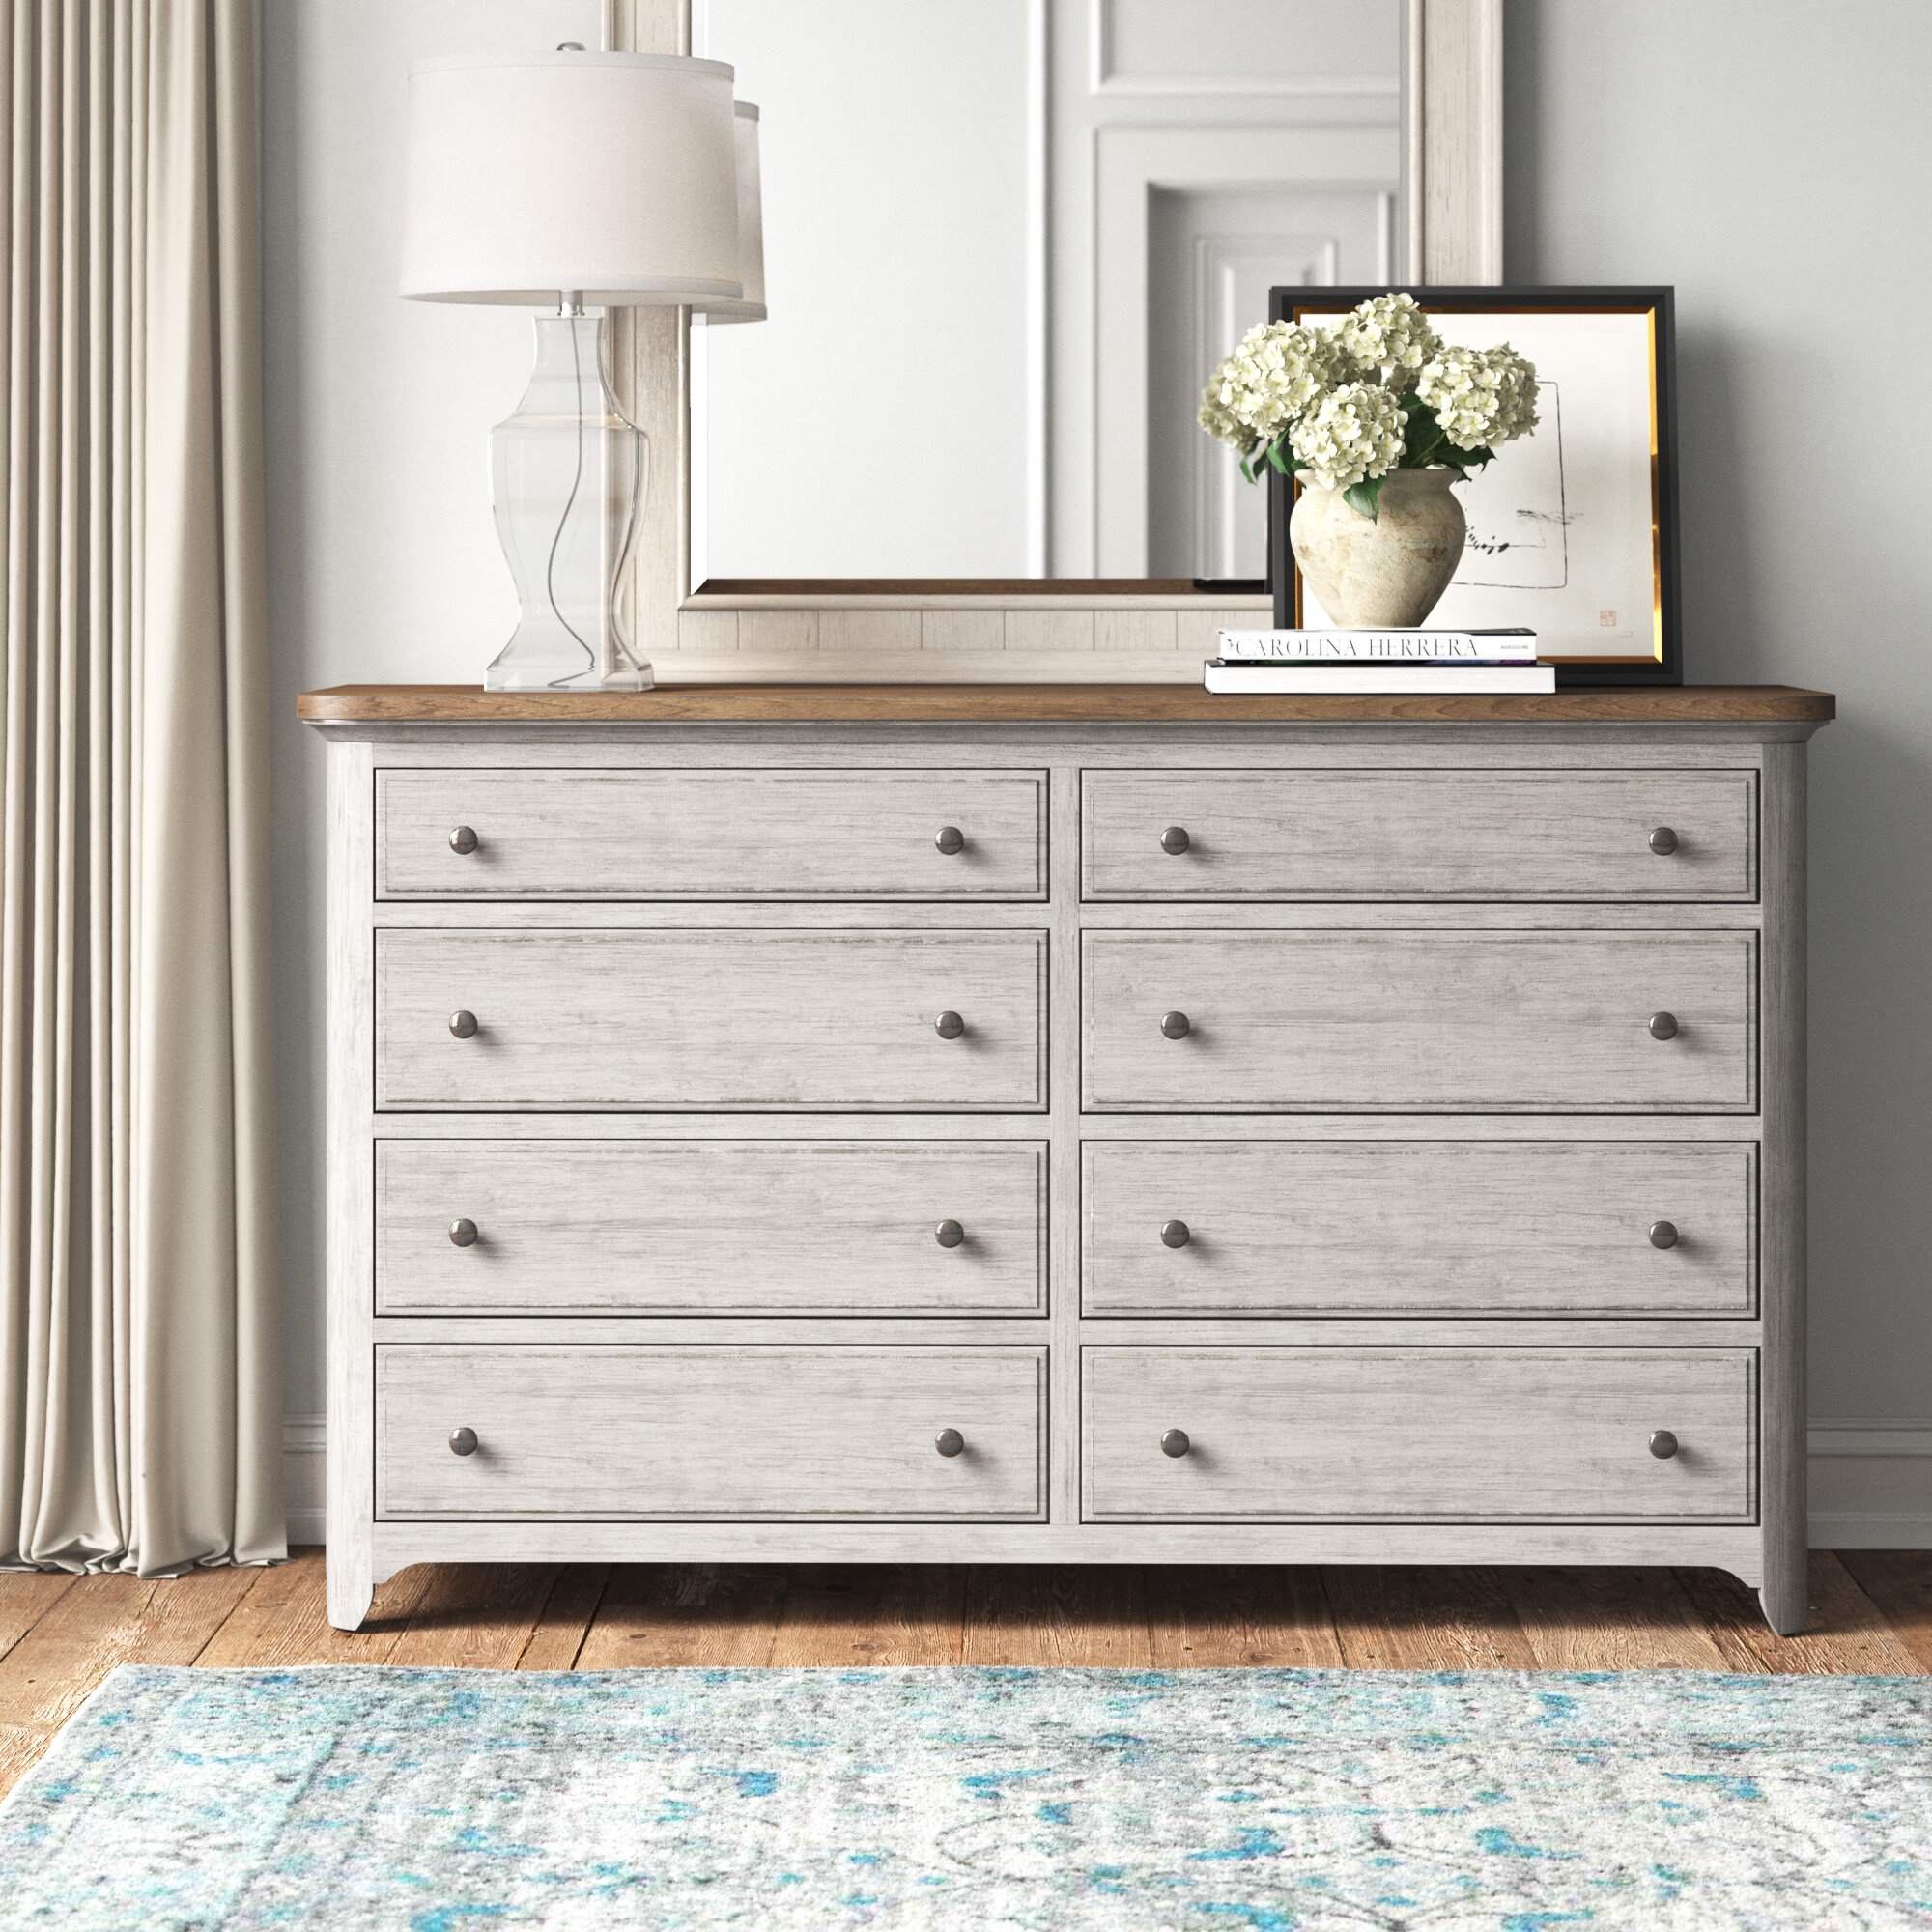 Feminine French Country Rhapsody 8 Drawer Double Dresser Reviews Wayfair